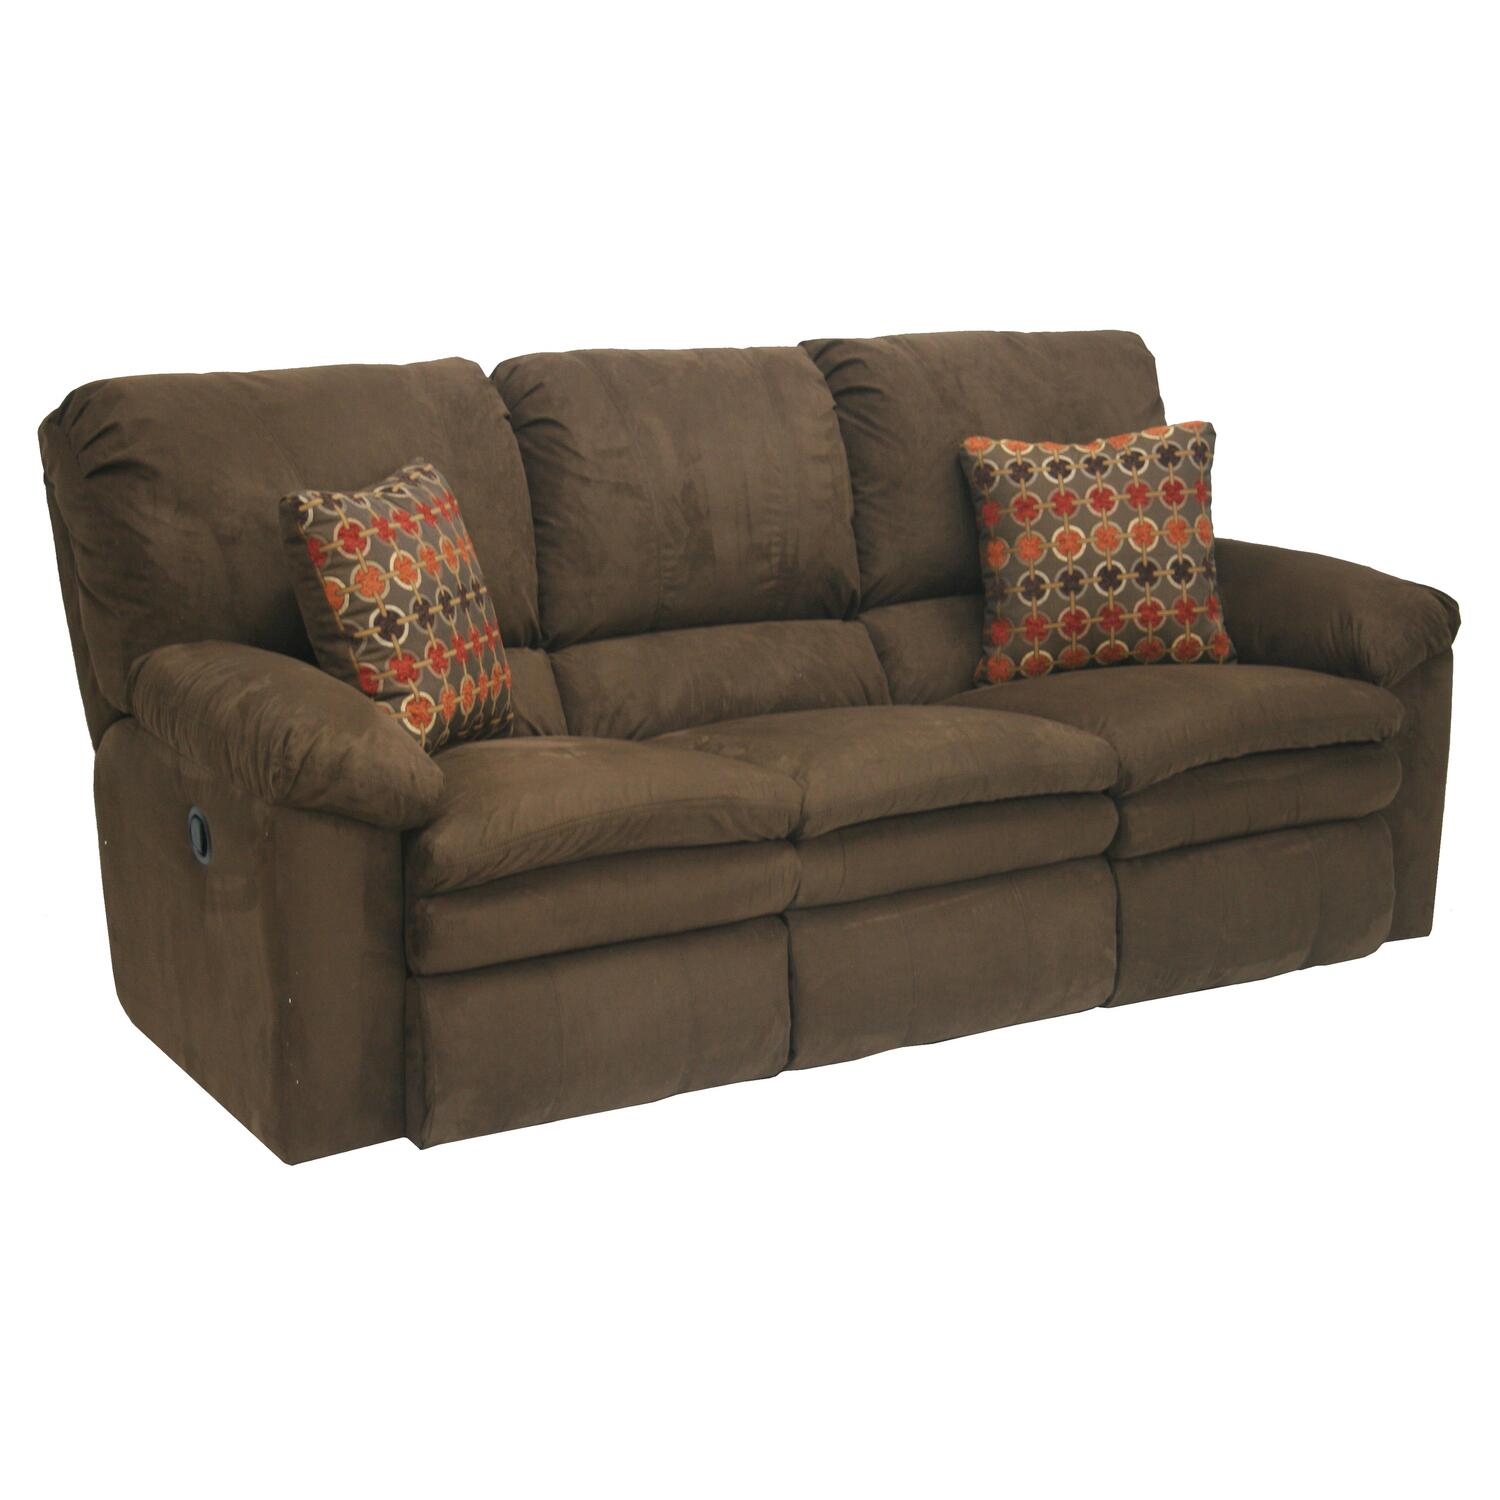 Catnapper impulse power reclining sofa by oj commerce Power reclining sofas and loveseats